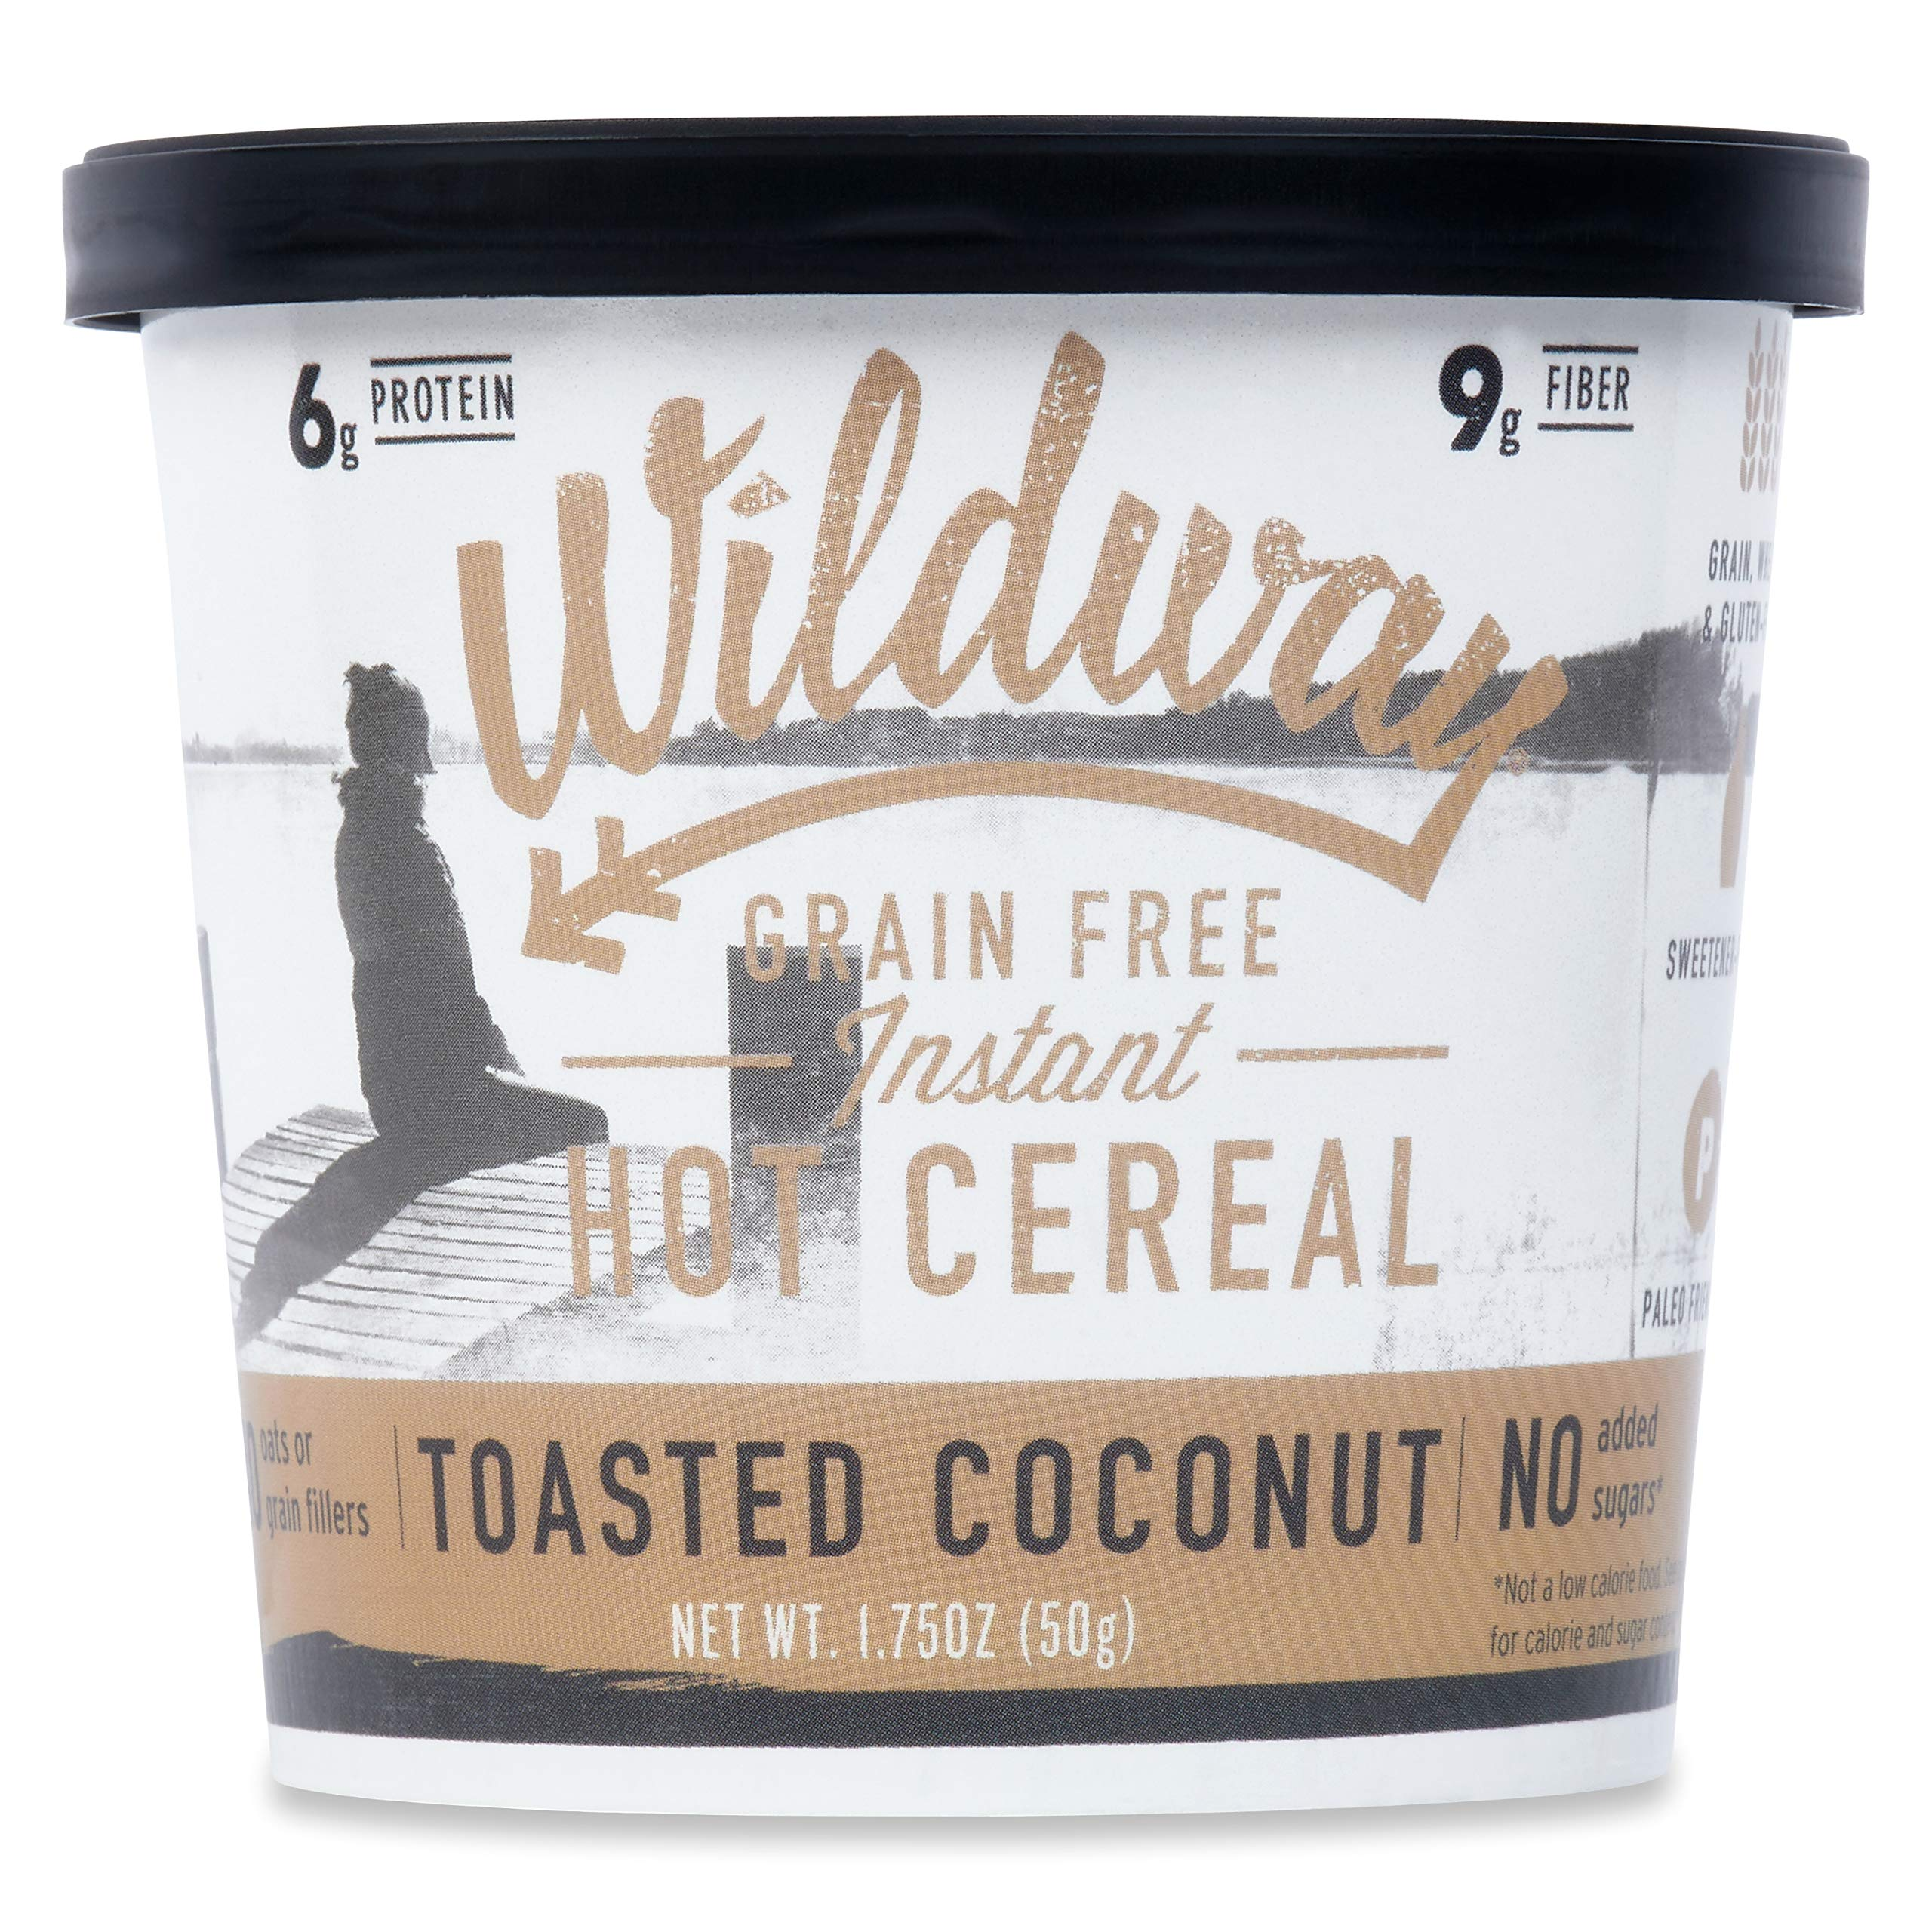 Wildway Vegan, Keto Hot Cereal Cups   Toasted Coconut   Certified Gluten Free Instant Breakfast Cereal, Low Carb Snack   Grain-Free, Keto, Paleo, Non-GMO, No Artificial Sweetener   6 pack